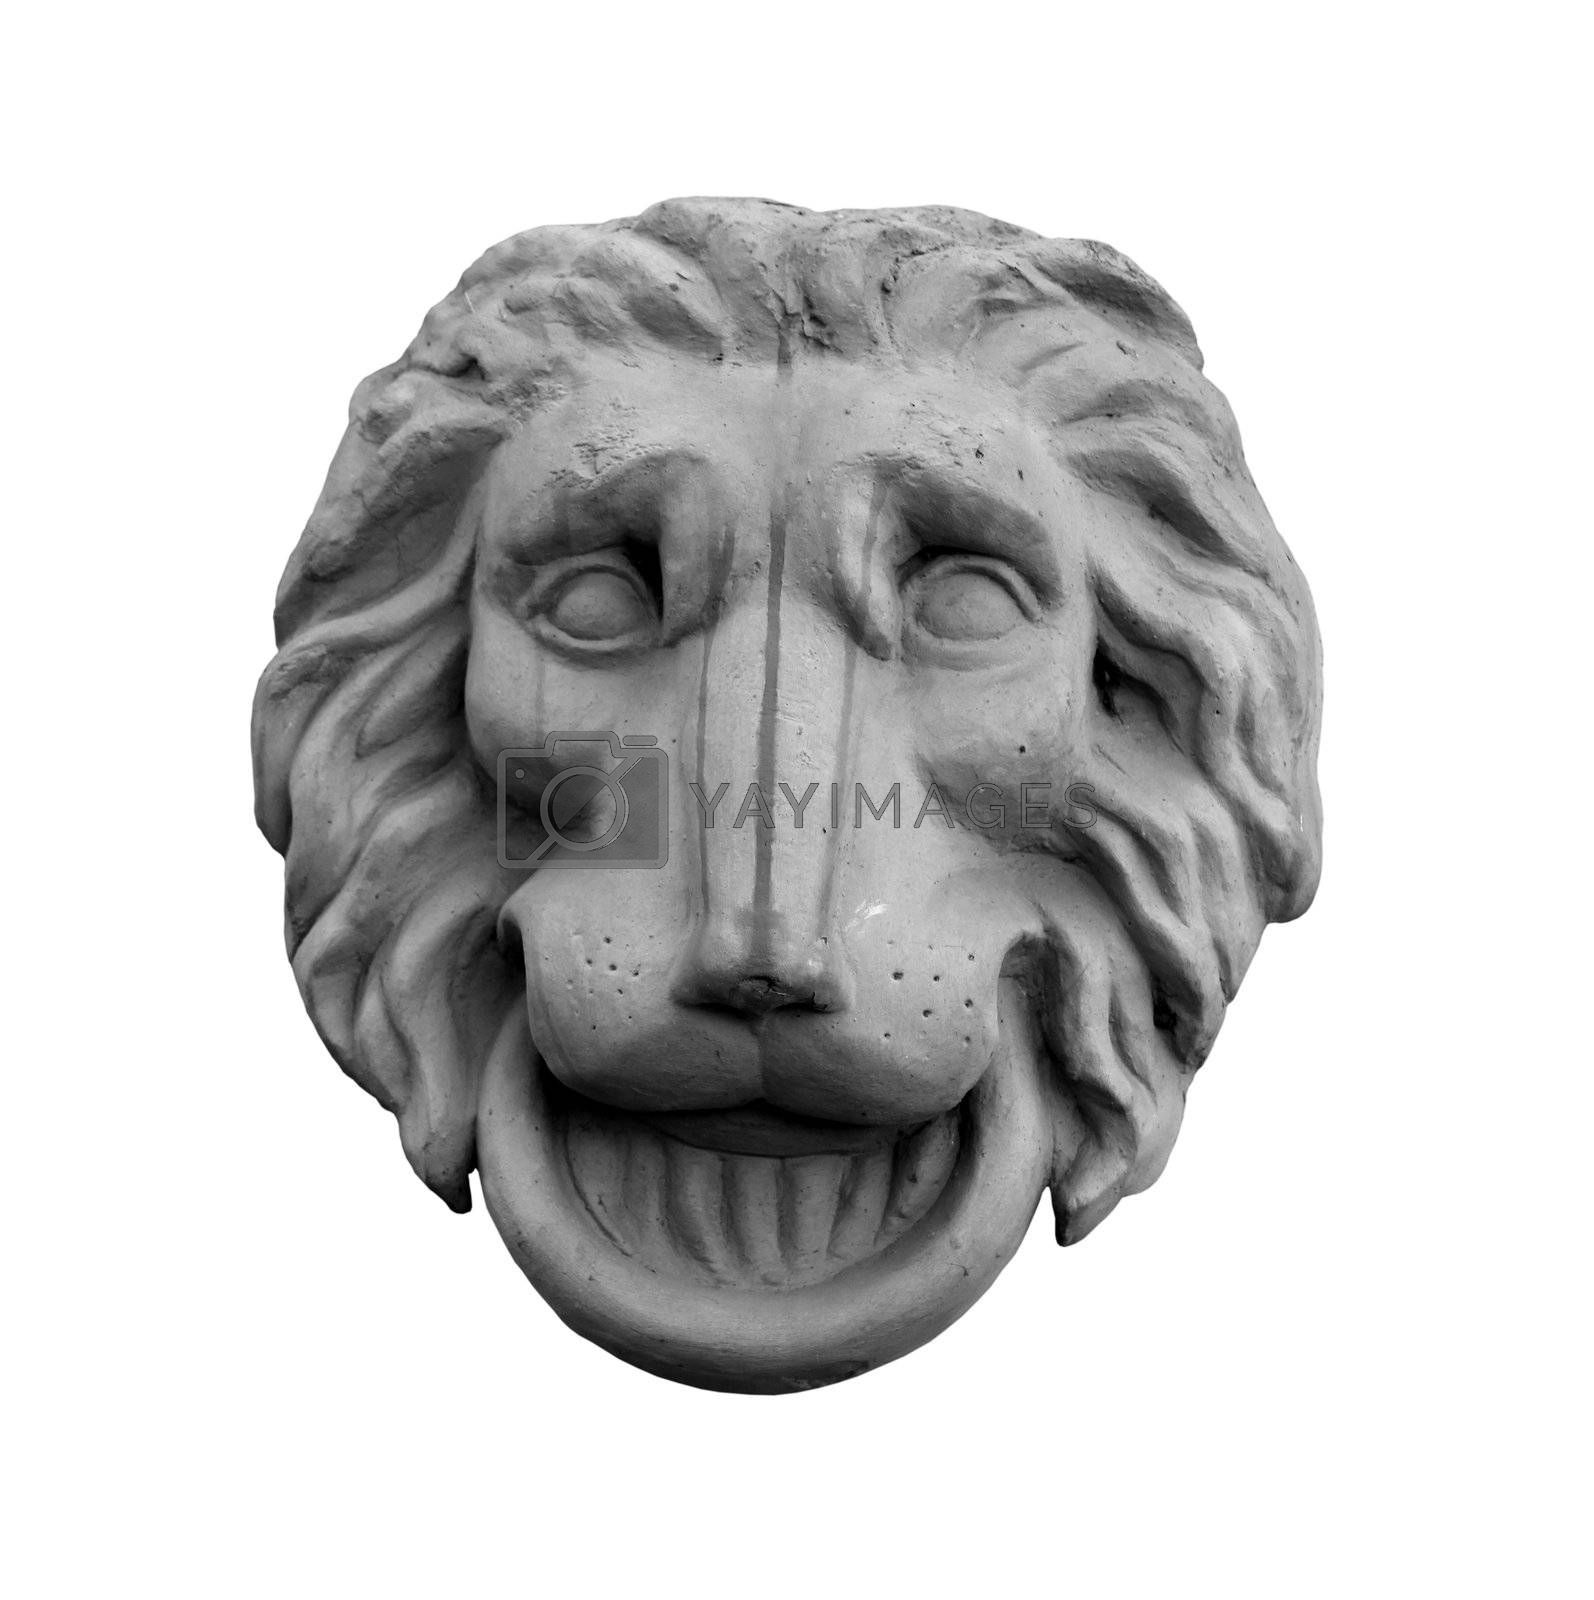 Bas-relief of the lion head isolated on white